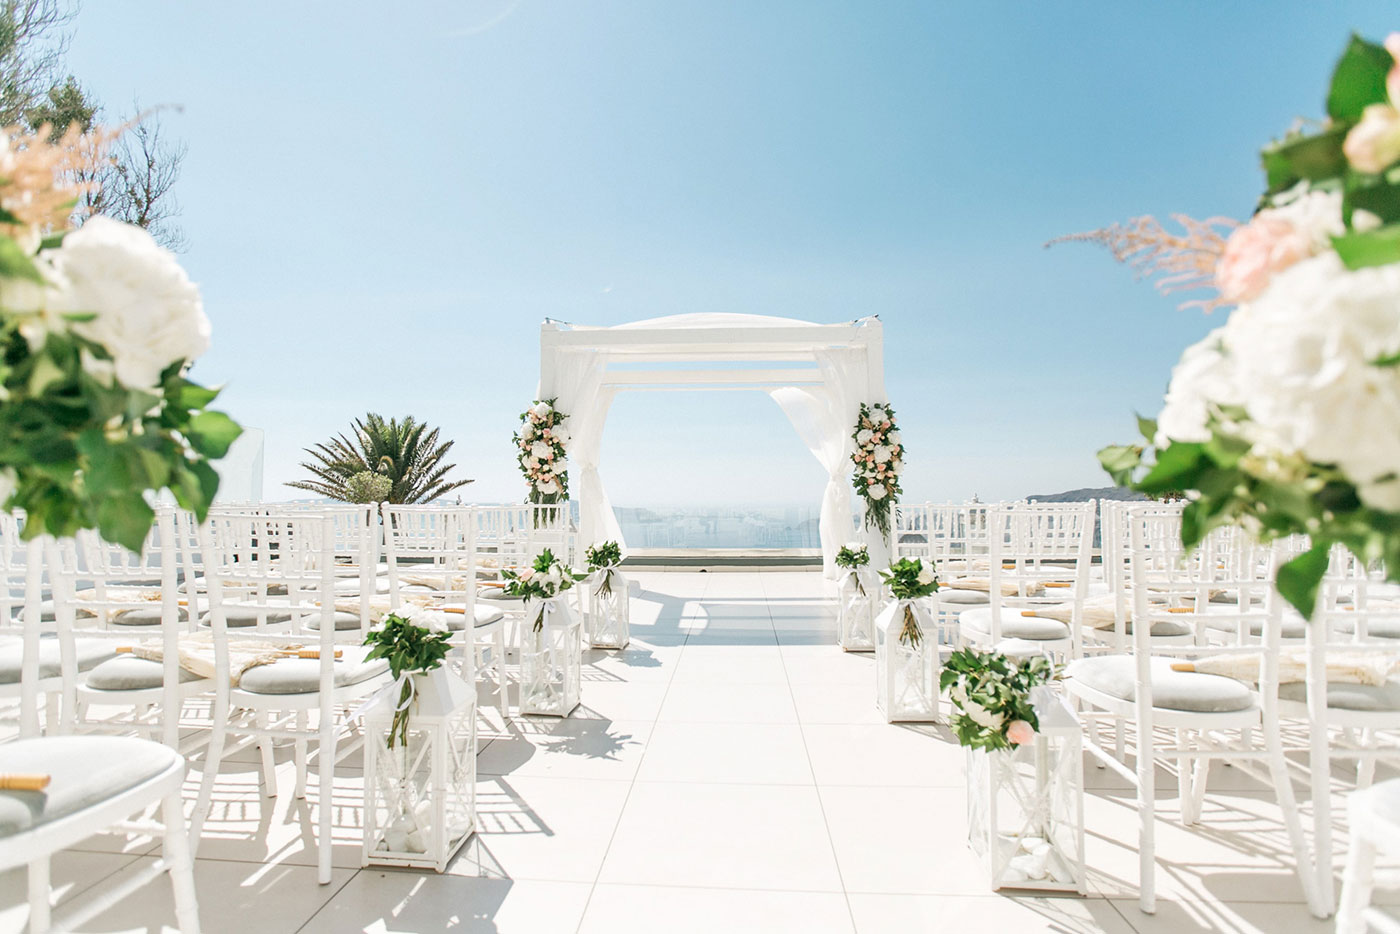 Le Ciel Wedding Venue